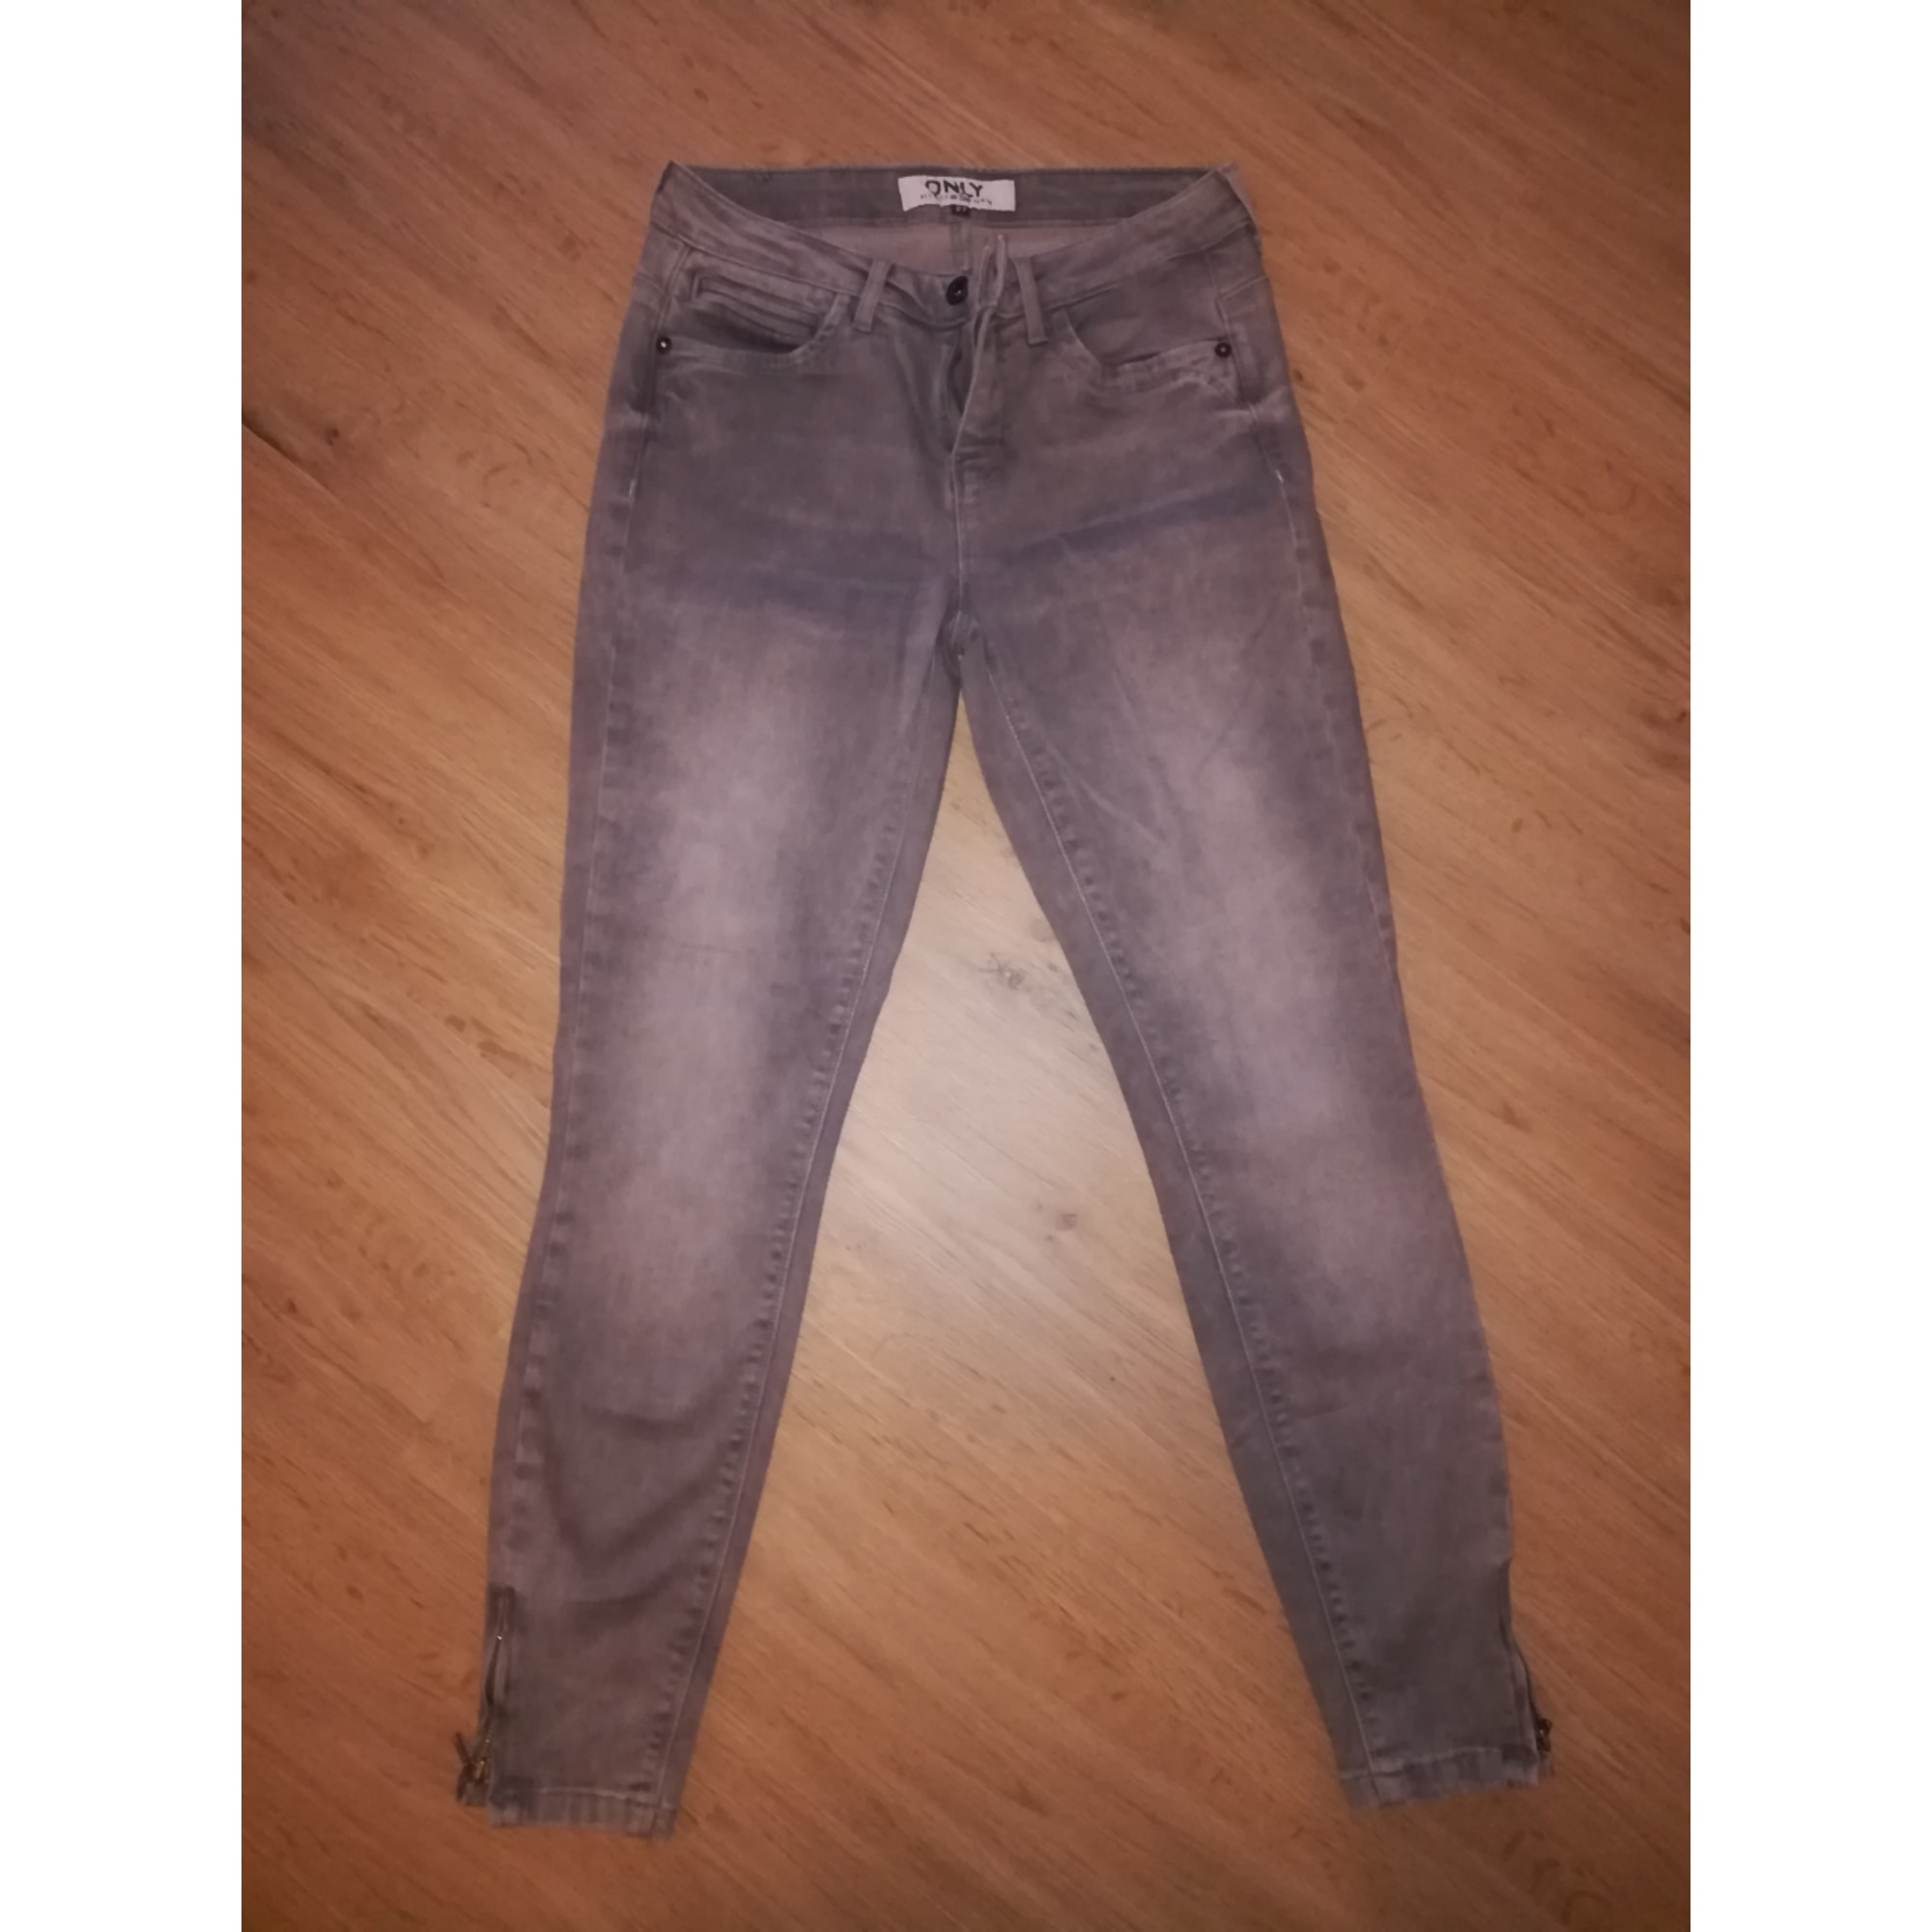 Jeans slim ONLY Gris, anthracite